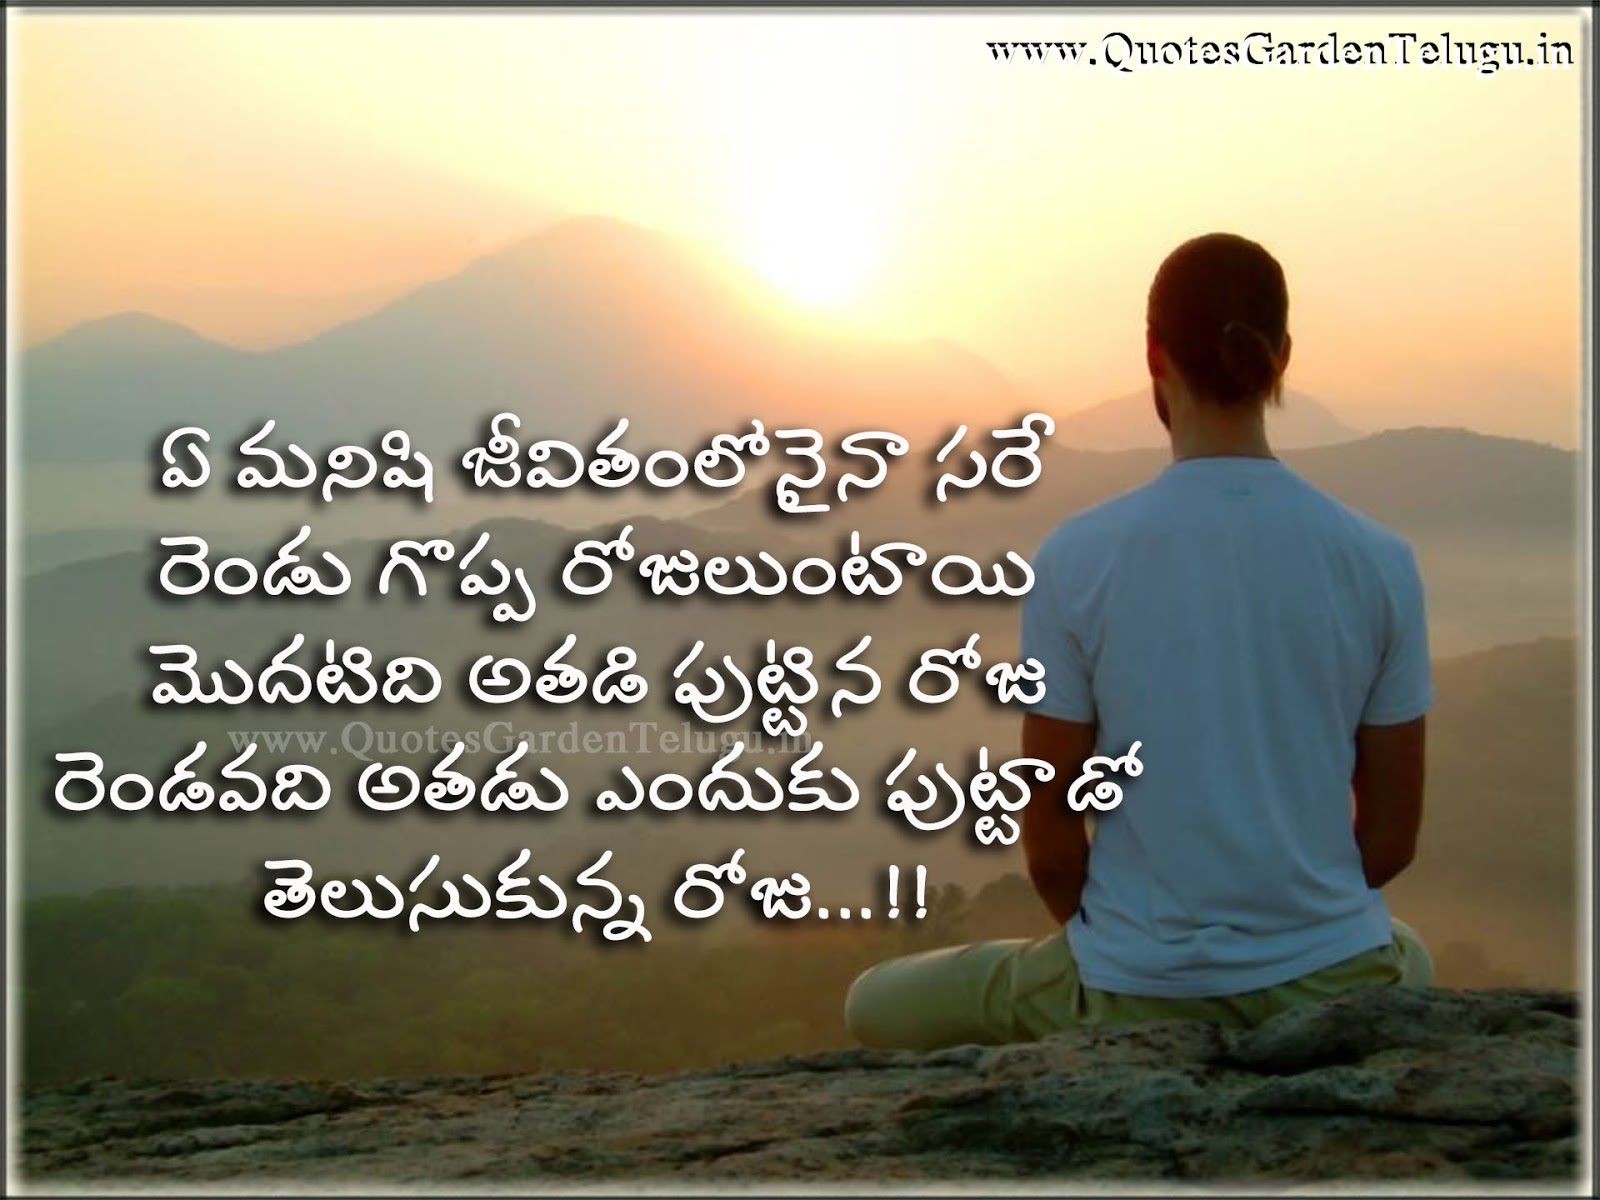 Inspirational Messages Best Telugu Inspirational Messages  Two Important Days About Whom